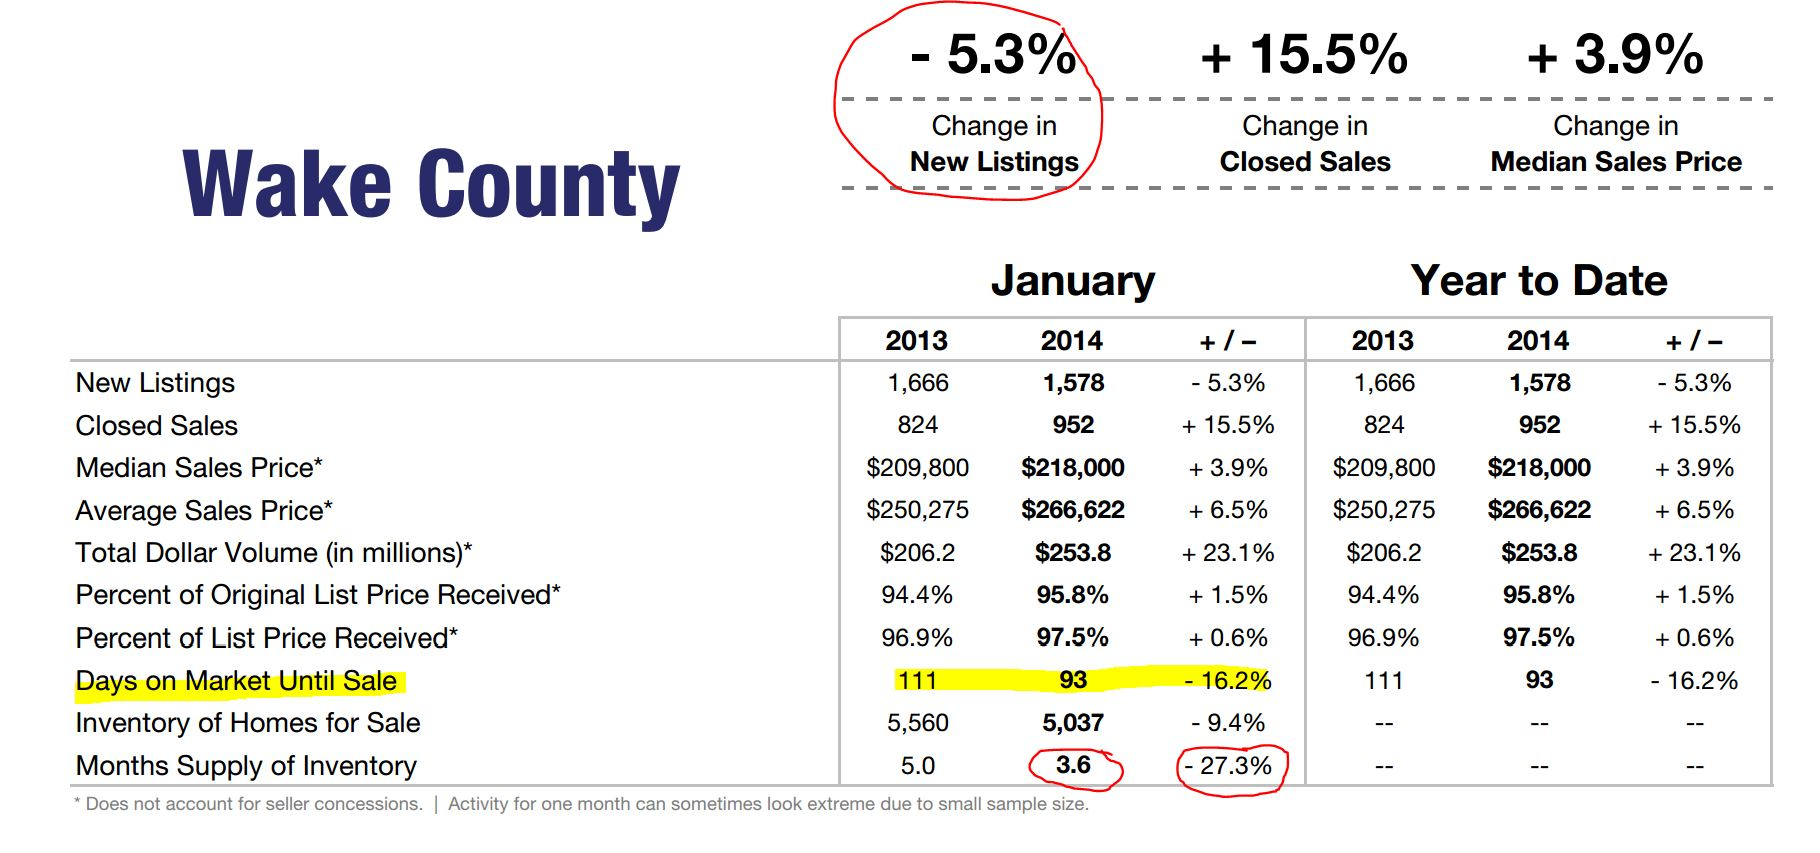 Wake County Jan 2014 Market Trend Data